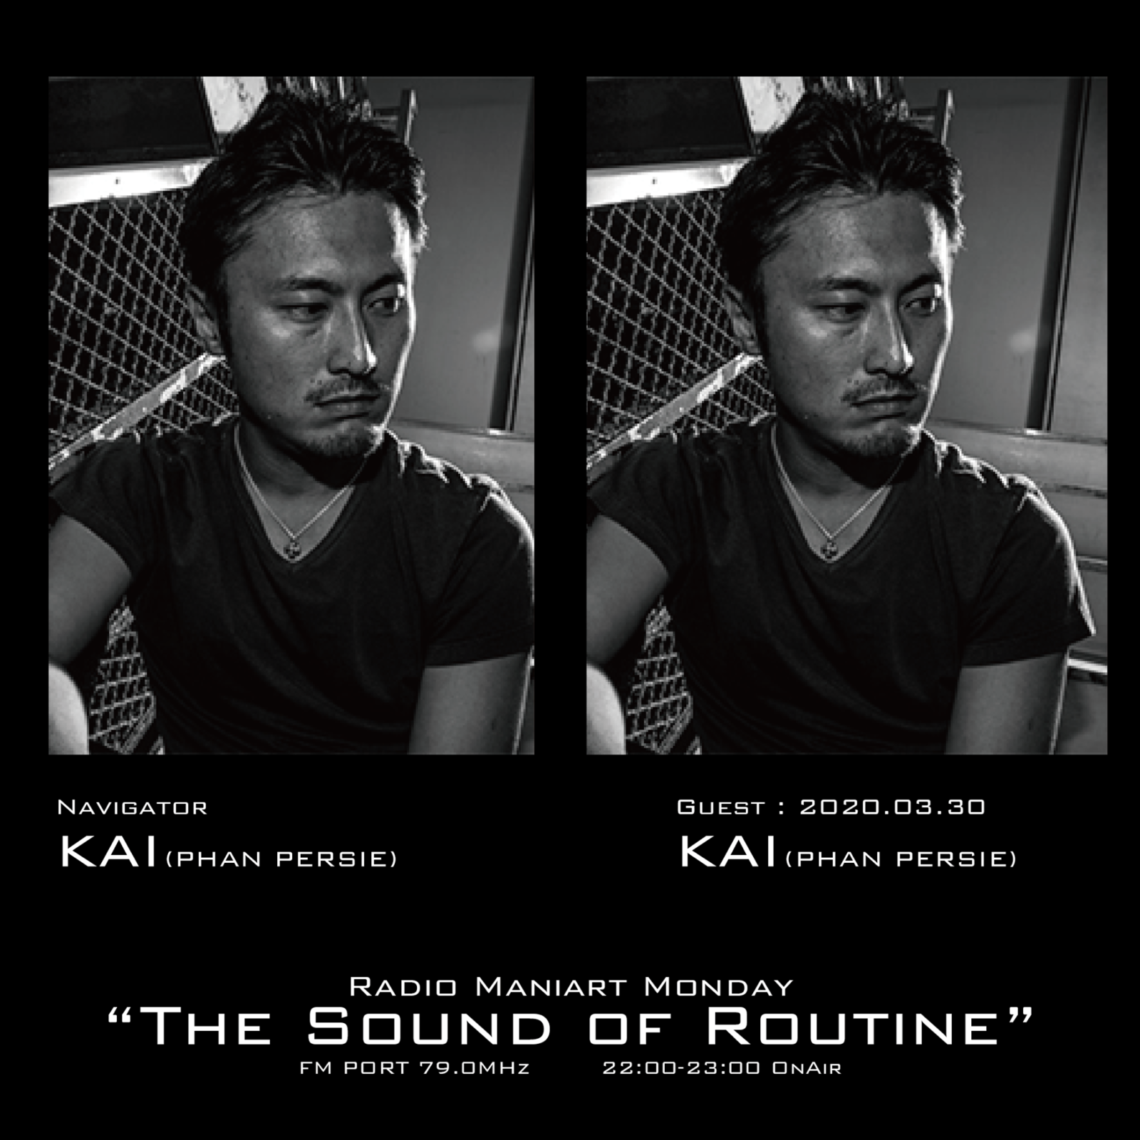 2020. 3. 30 MON – KAI : Navigator on FM PORT / the Sound of Routine